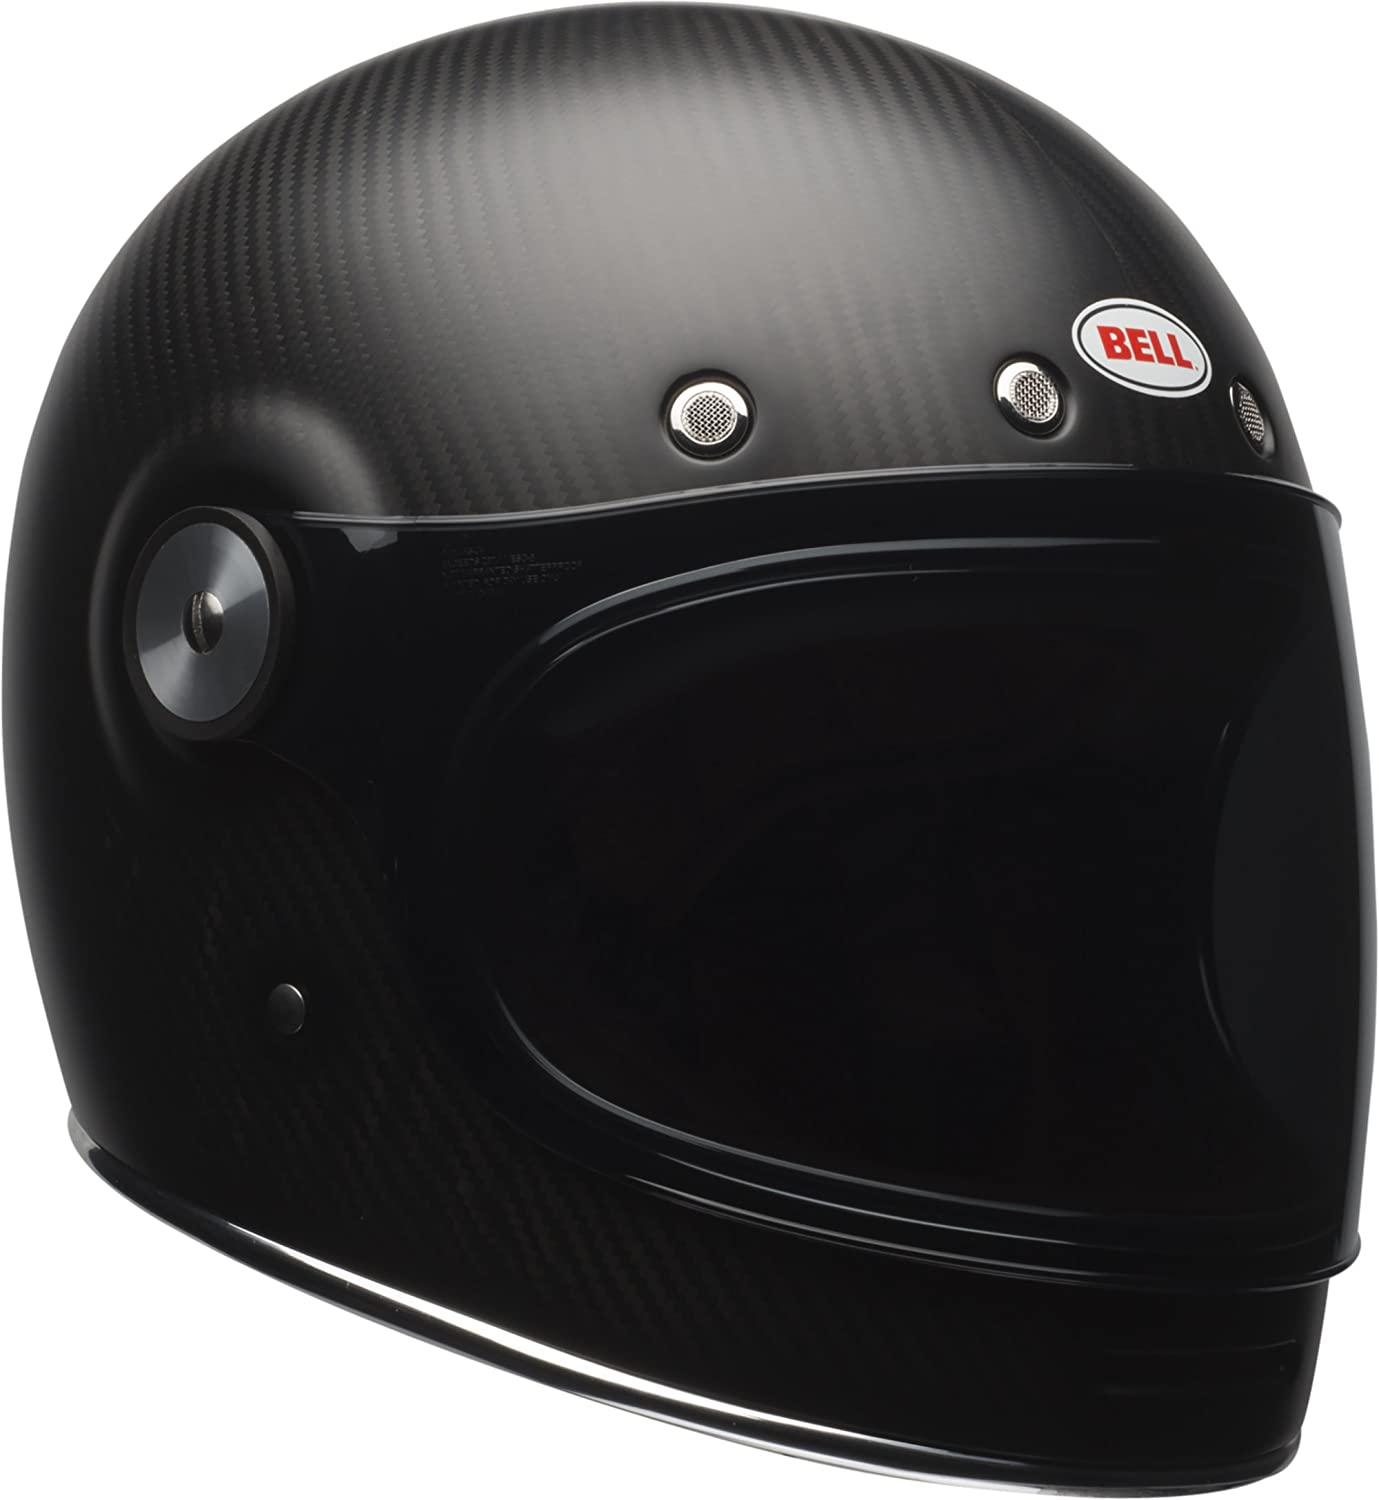 Bell Bullitt Carbon Full Face Motorcycle Helmet